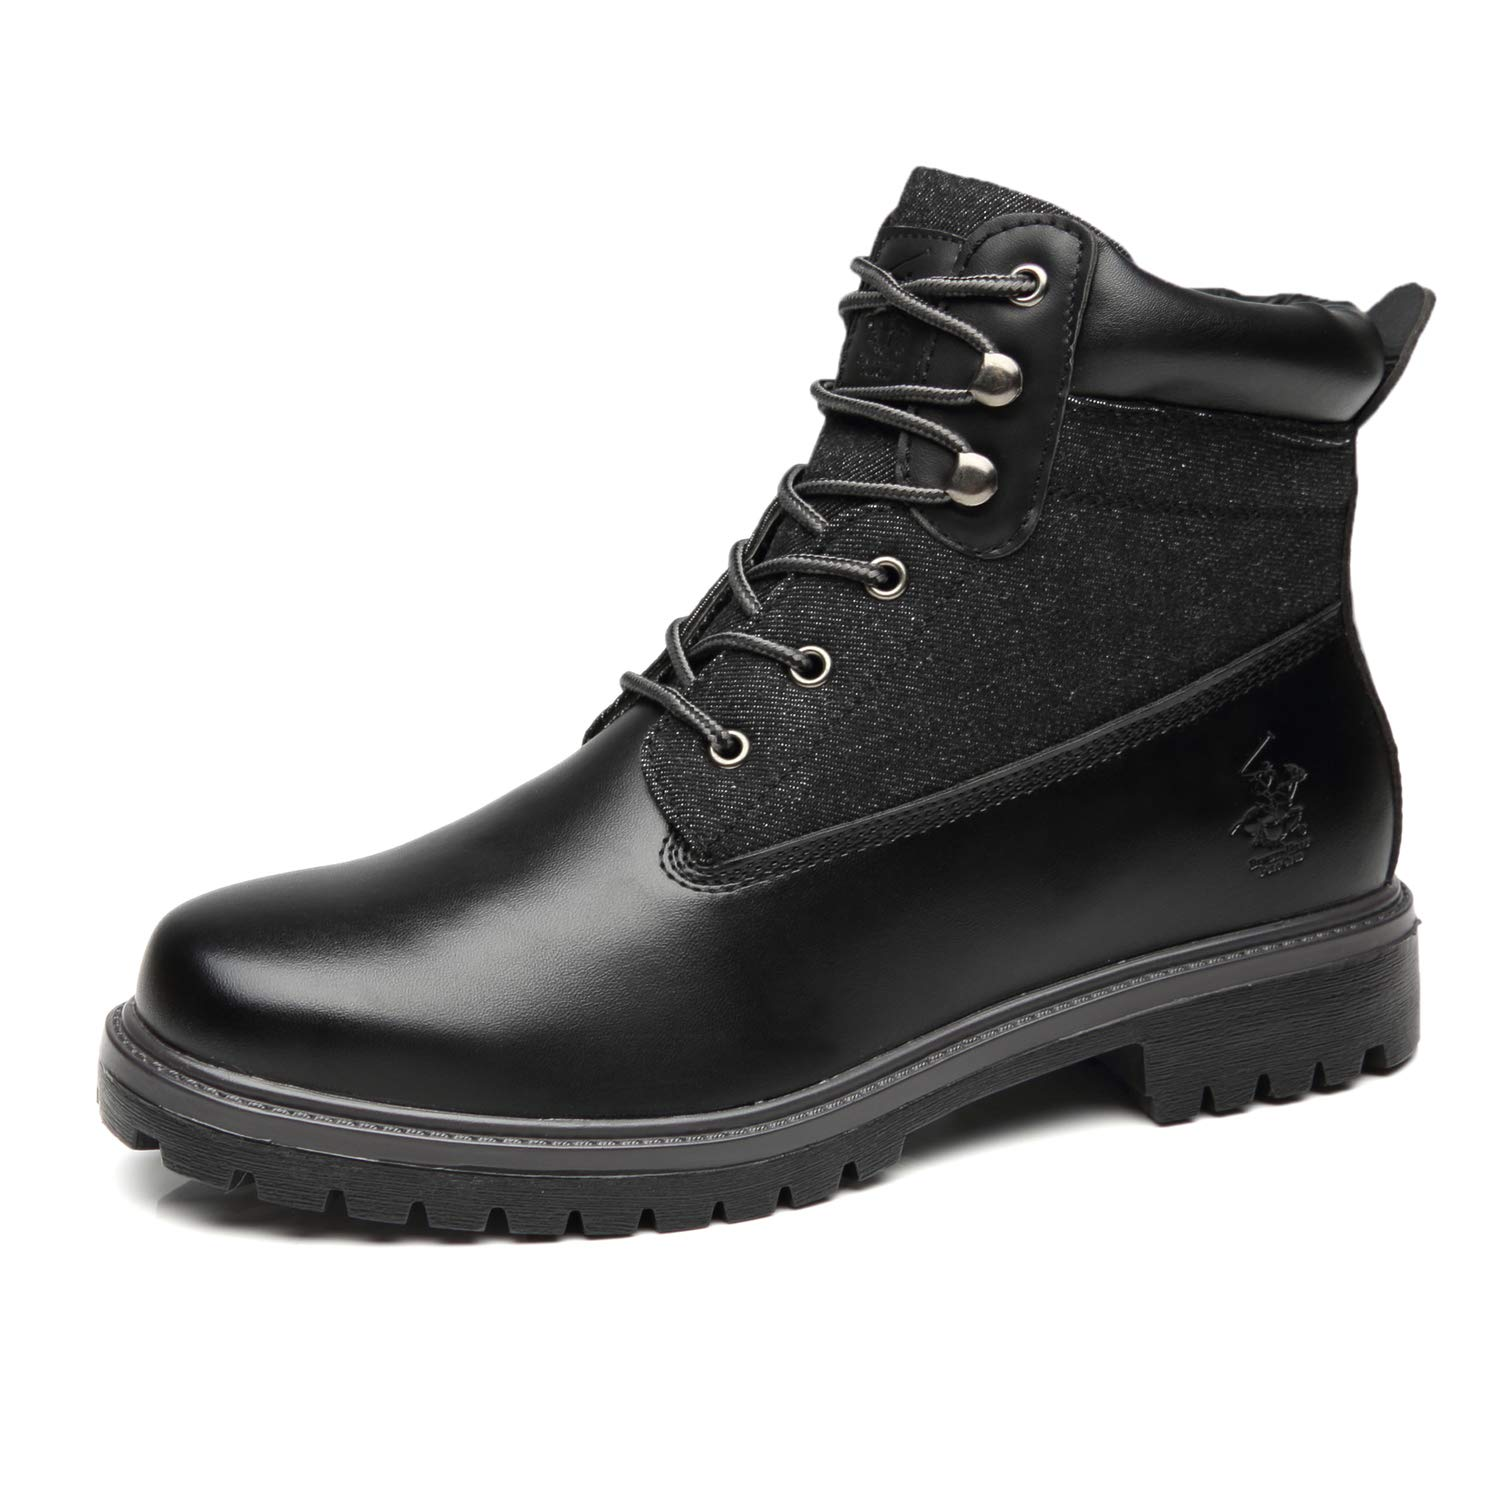 Beverly Hills Polo Club Men's Winter Boots Casual Comfortable Outdoor Leather Lace Up Snow Boots for Men by Beverly Hills Polo Club